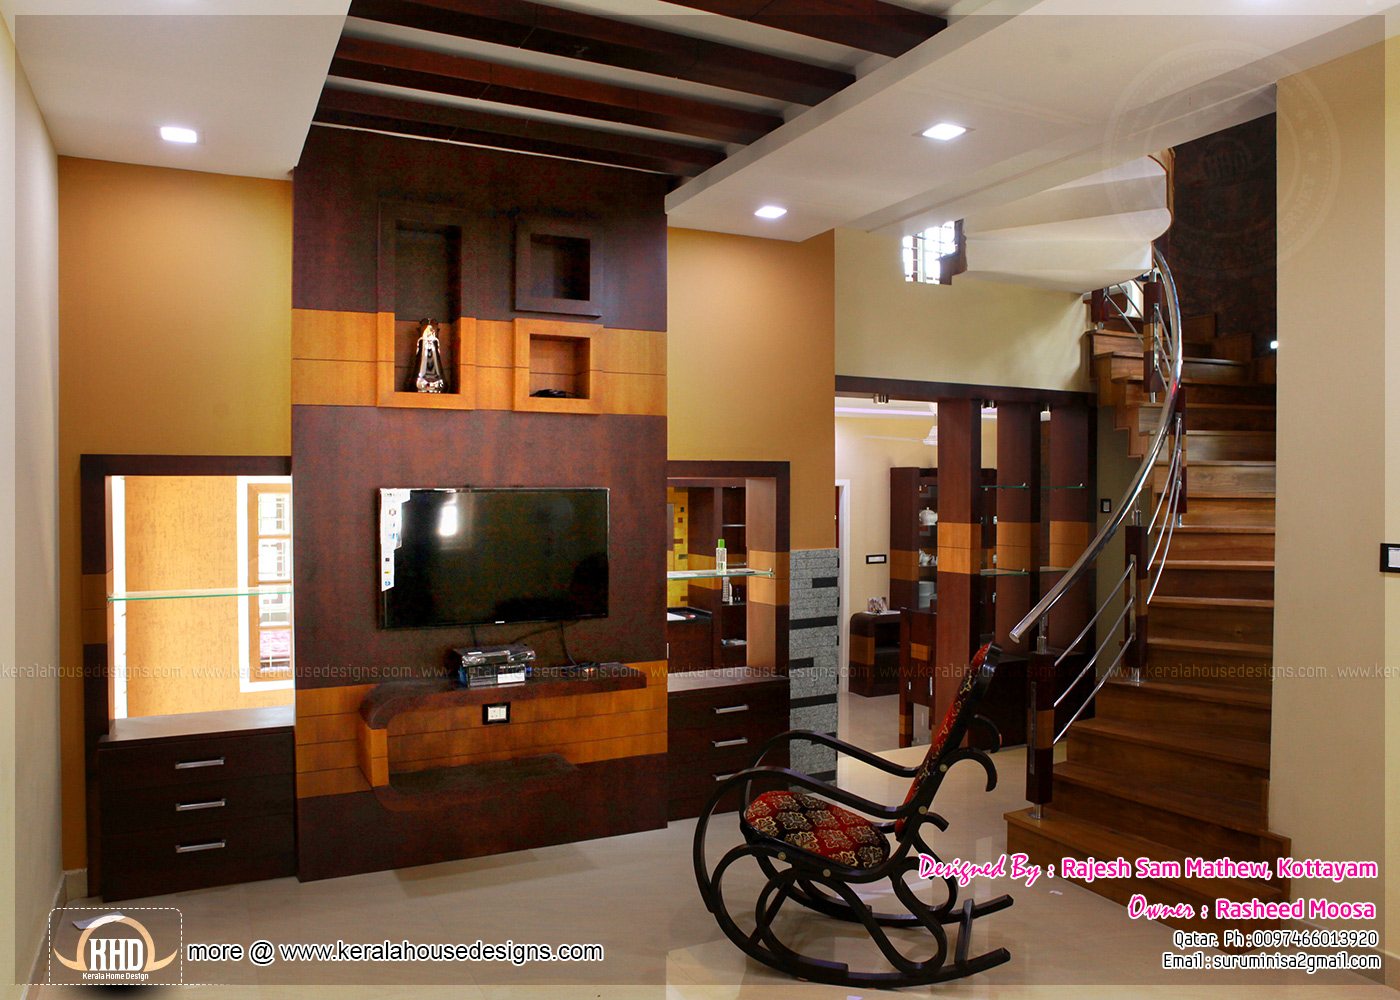 Kerala interior design with photos kerala home design for Mansion interior design